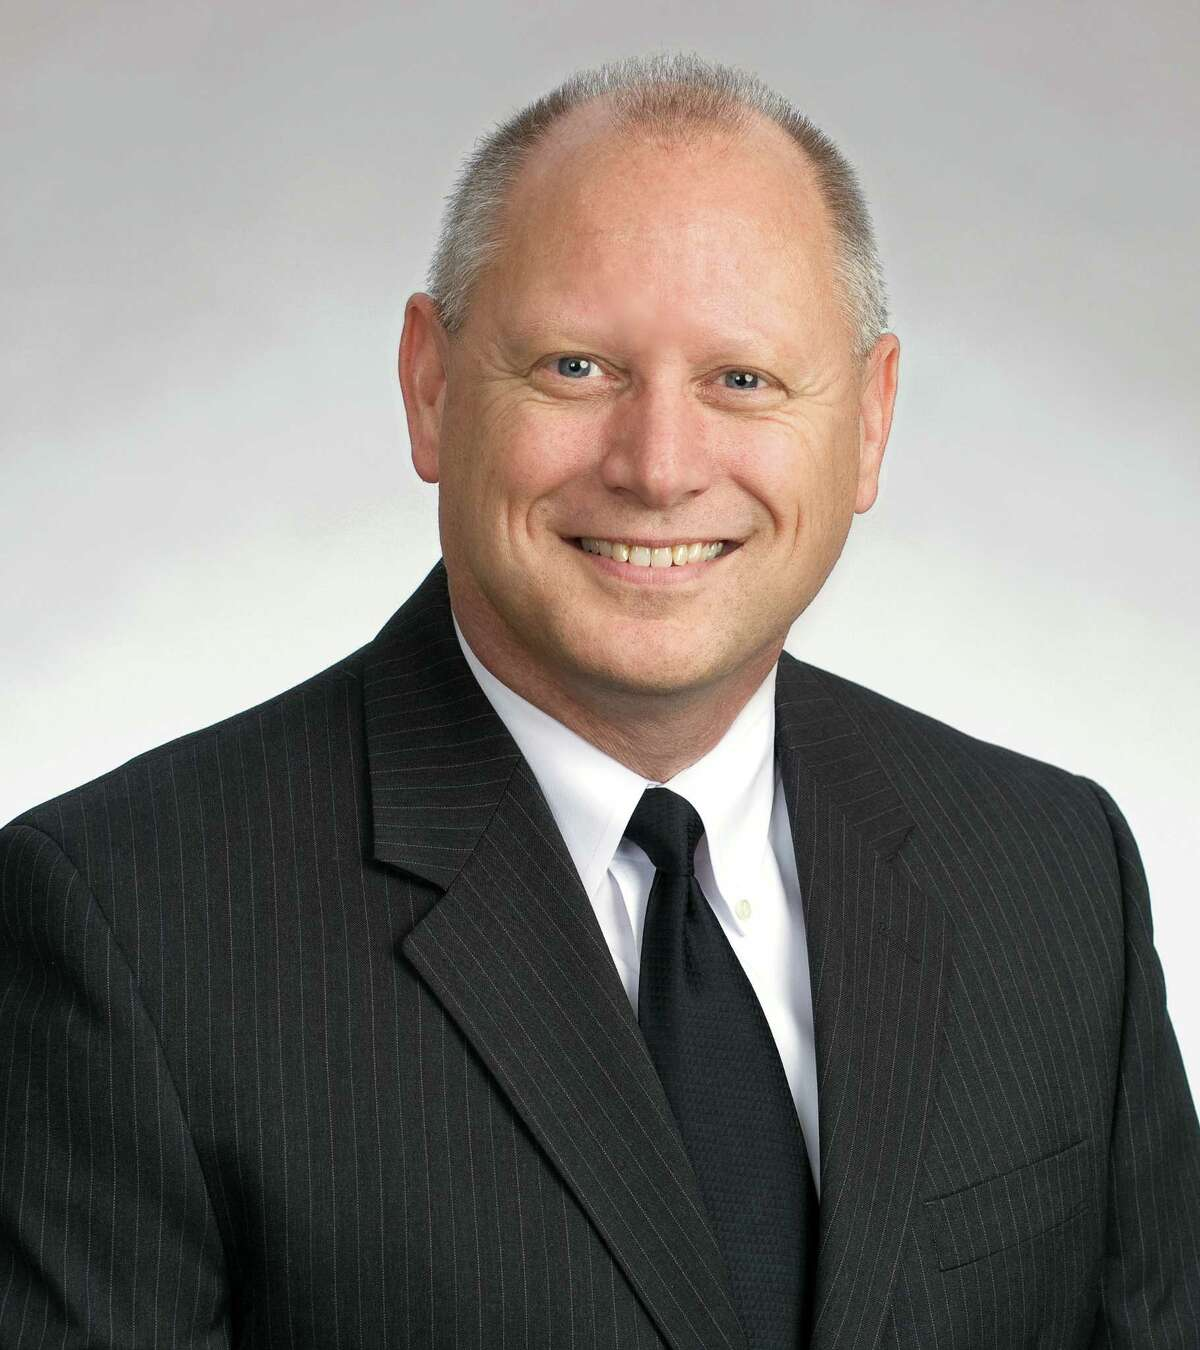 Joe Vortherms was named senior vice president energy services at CenterPoint Energy. He leads the companyÂ?'s unregulated natural gas sales and services business.